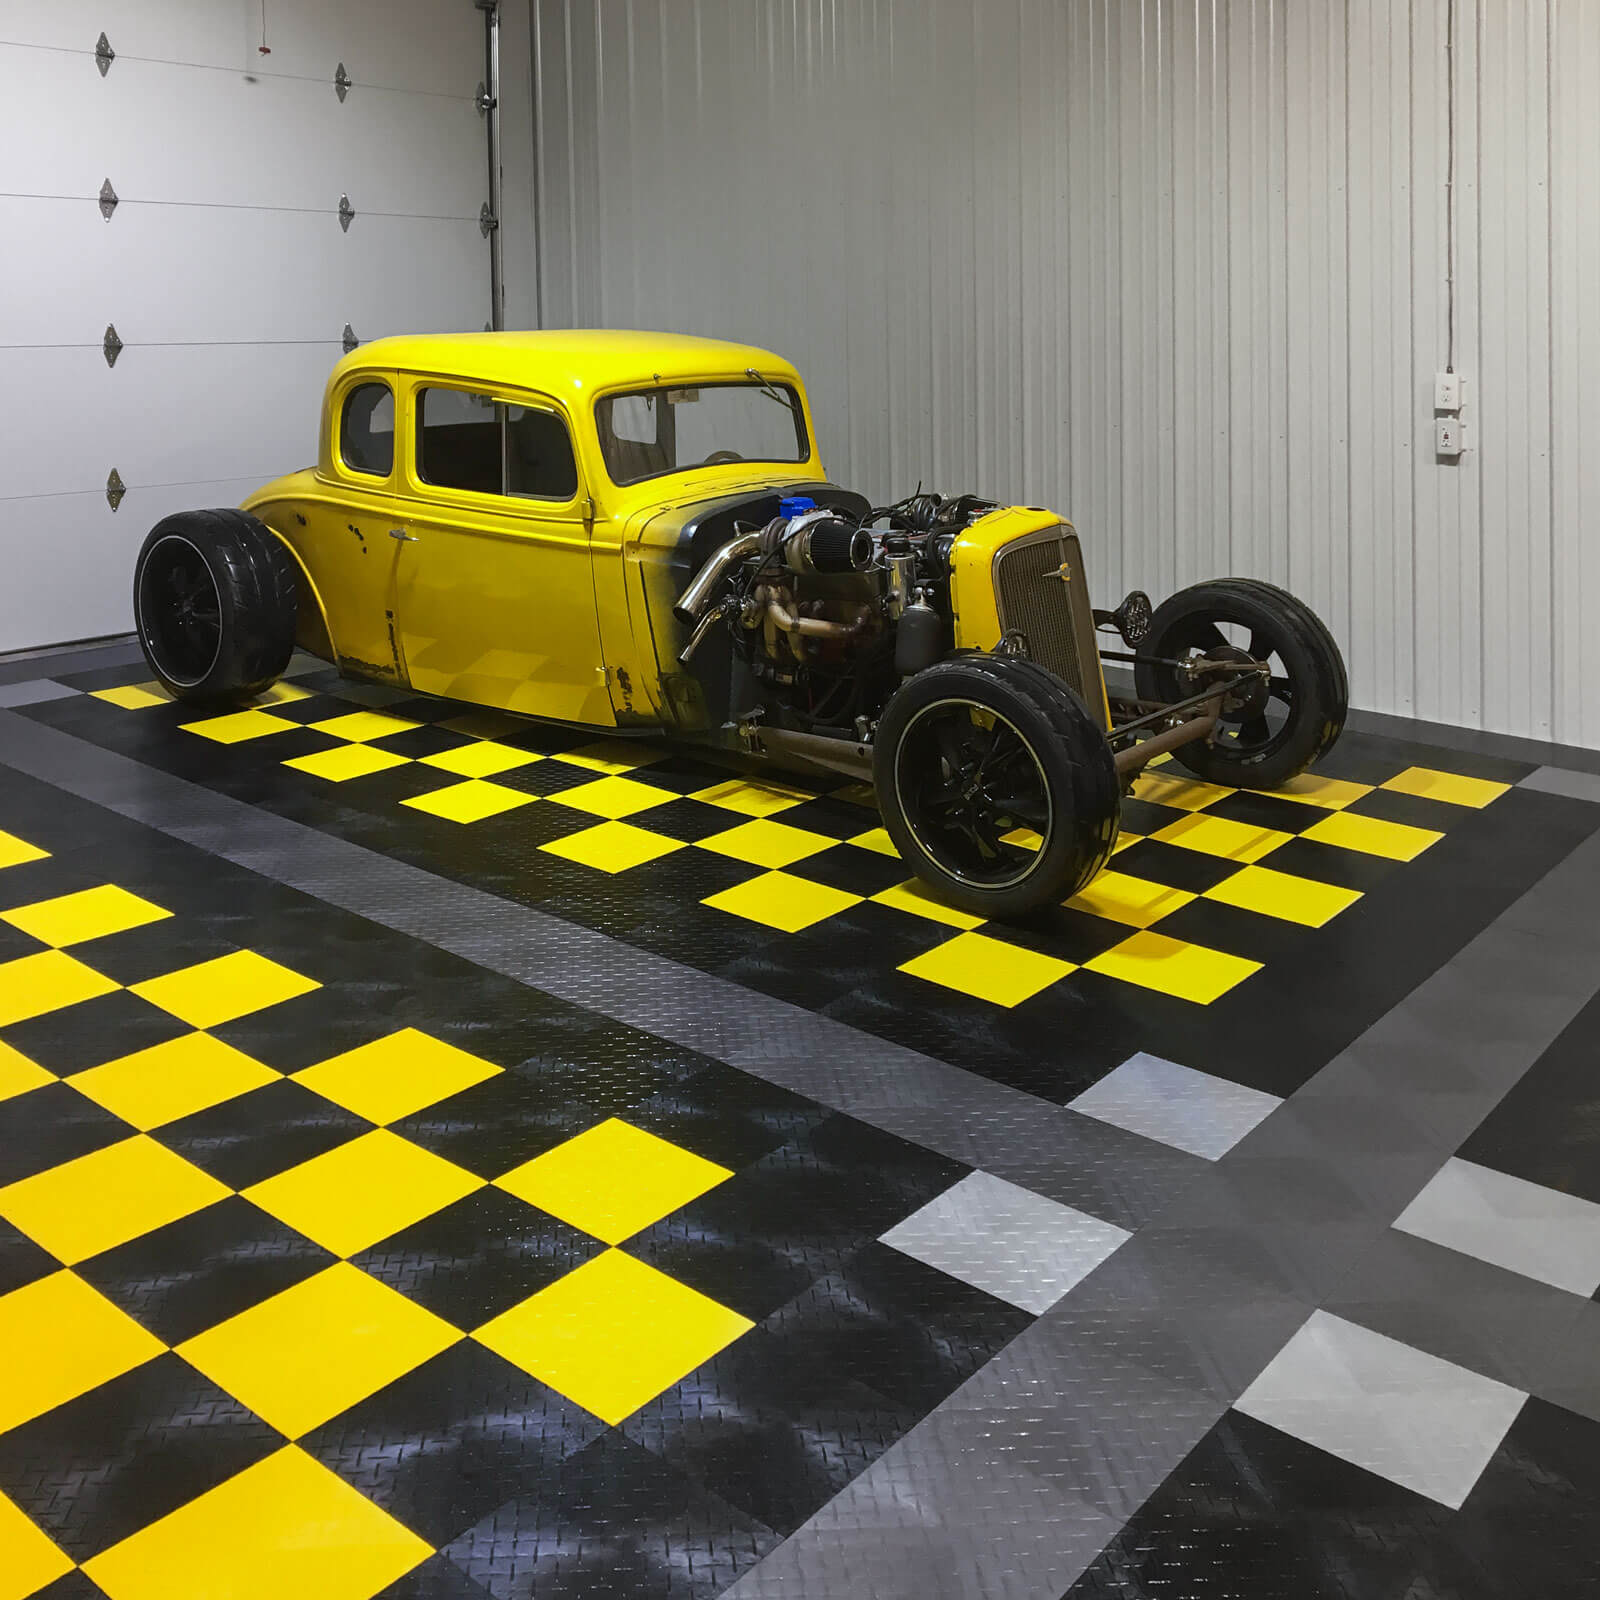 Yellow Rat Rod in matching yellow, black, graphite and alloy RaceDeck Diamond garage